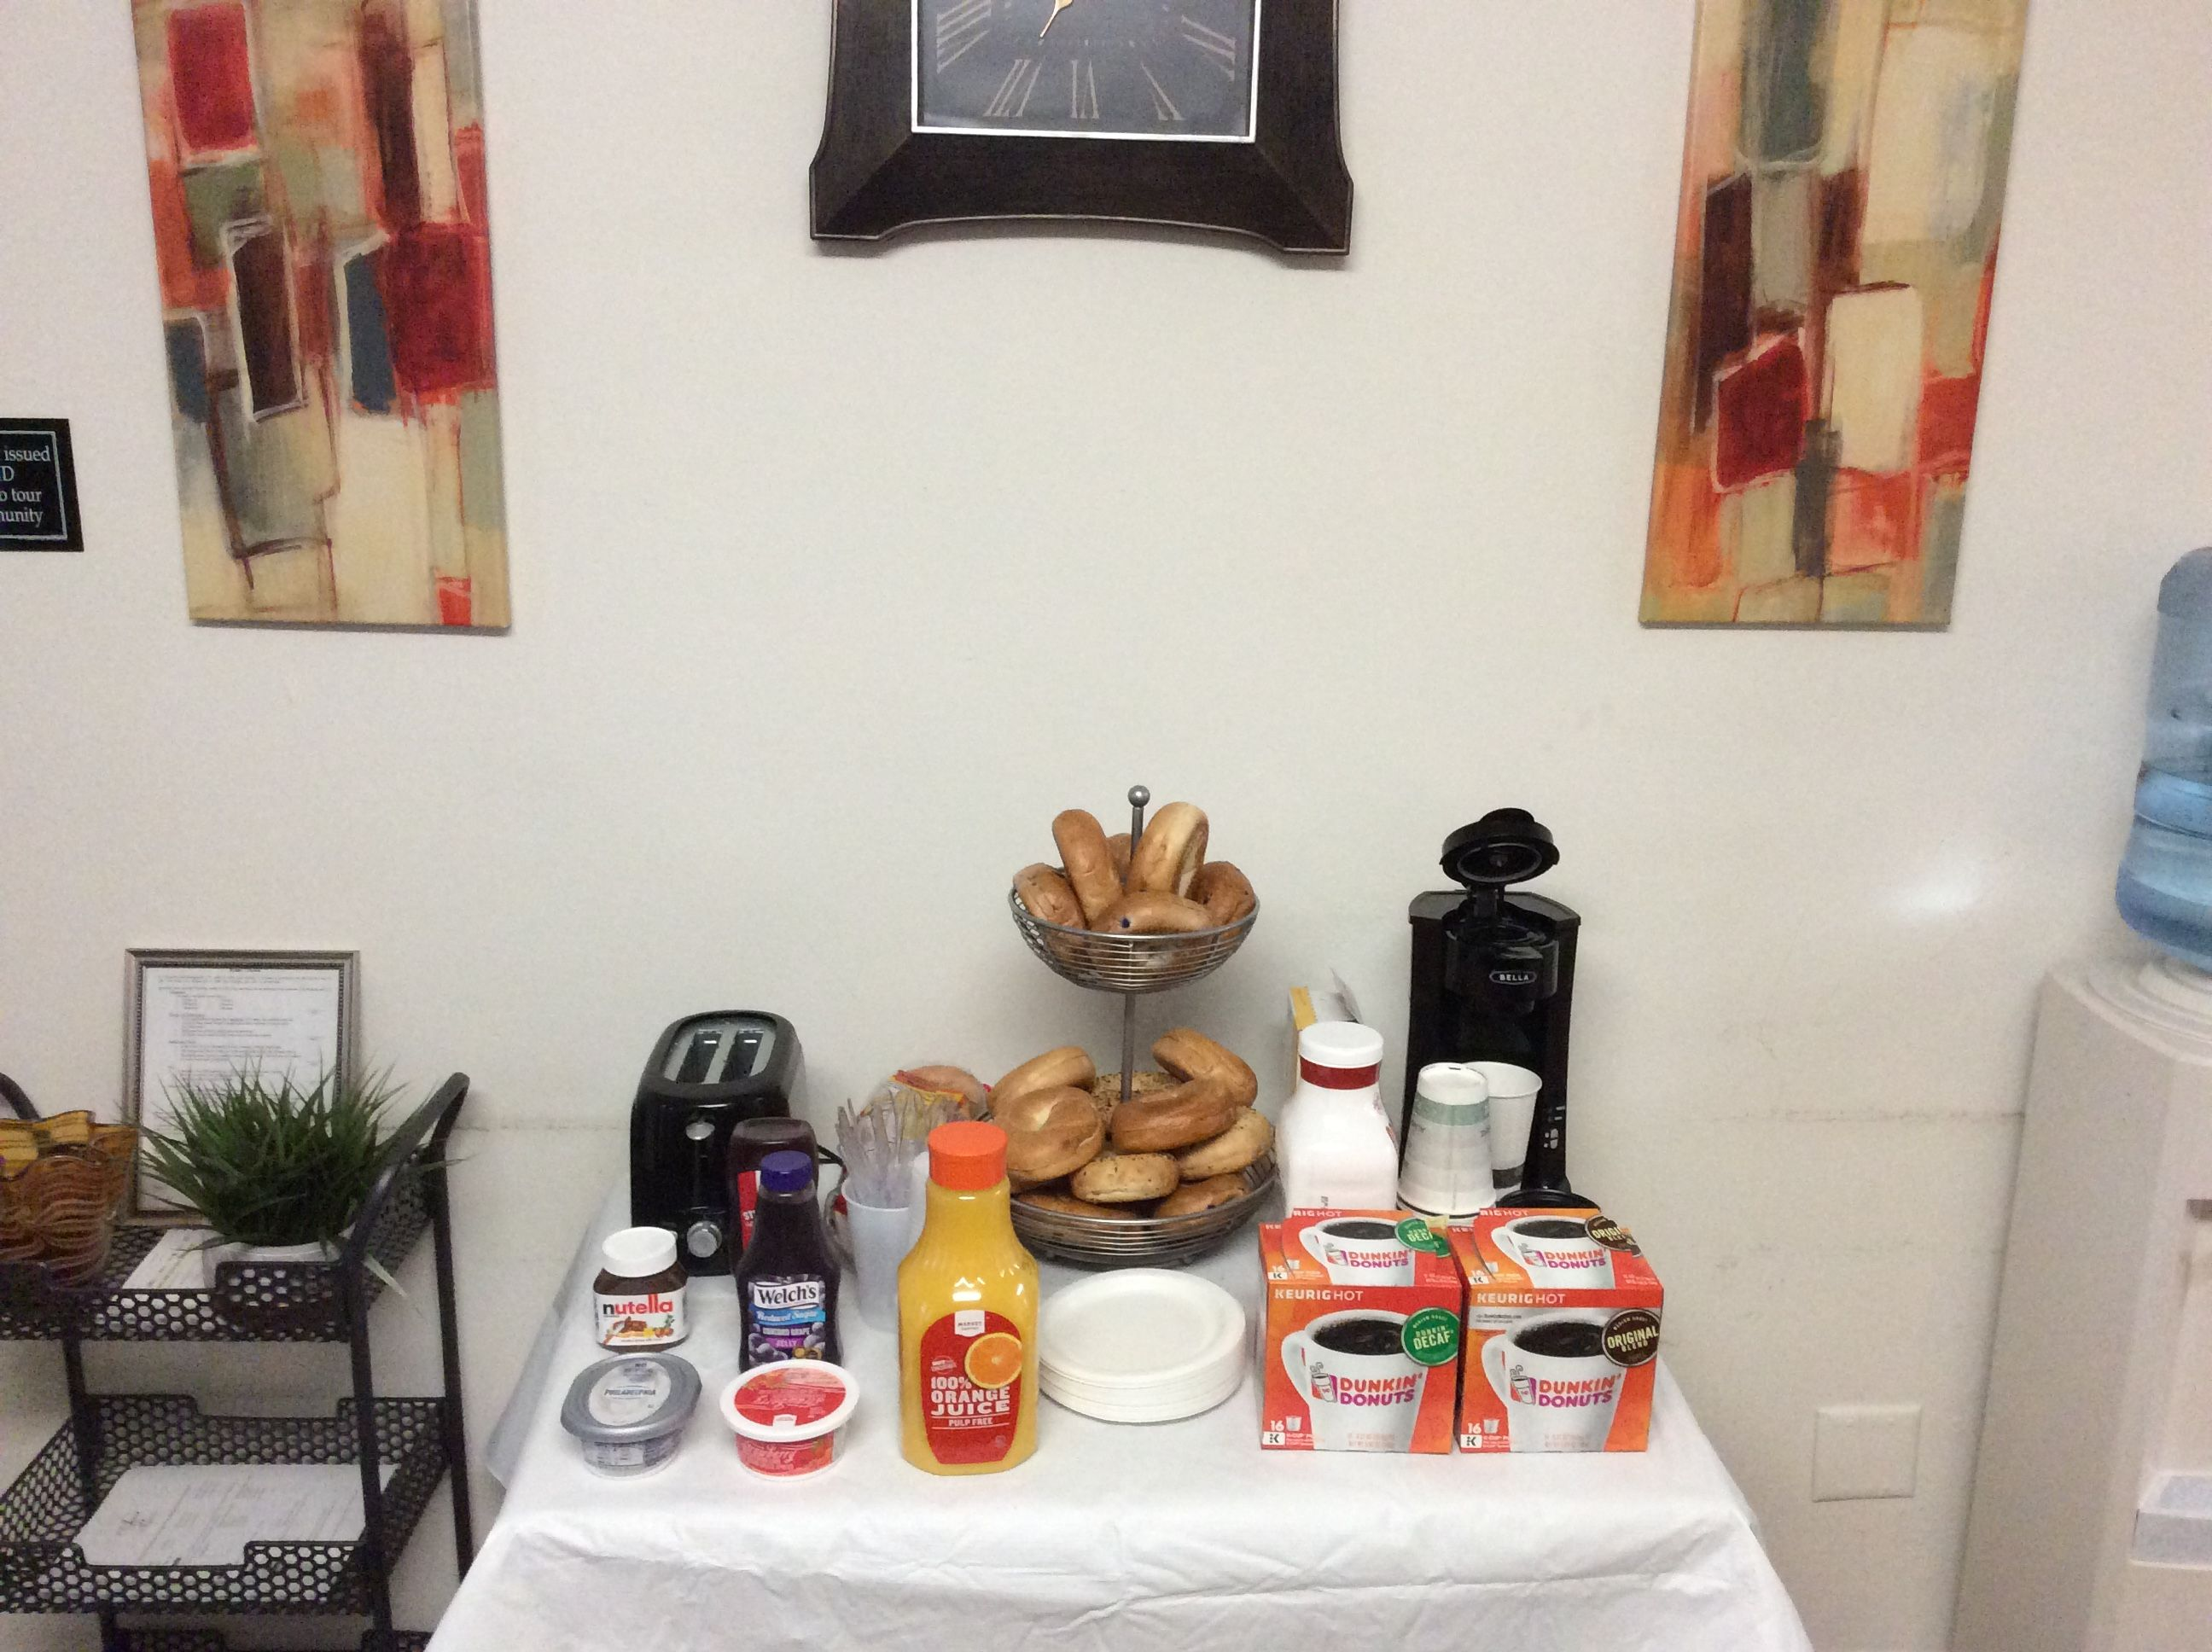 Good Thursday Morning Arbor Pointe Residents! The Bagel